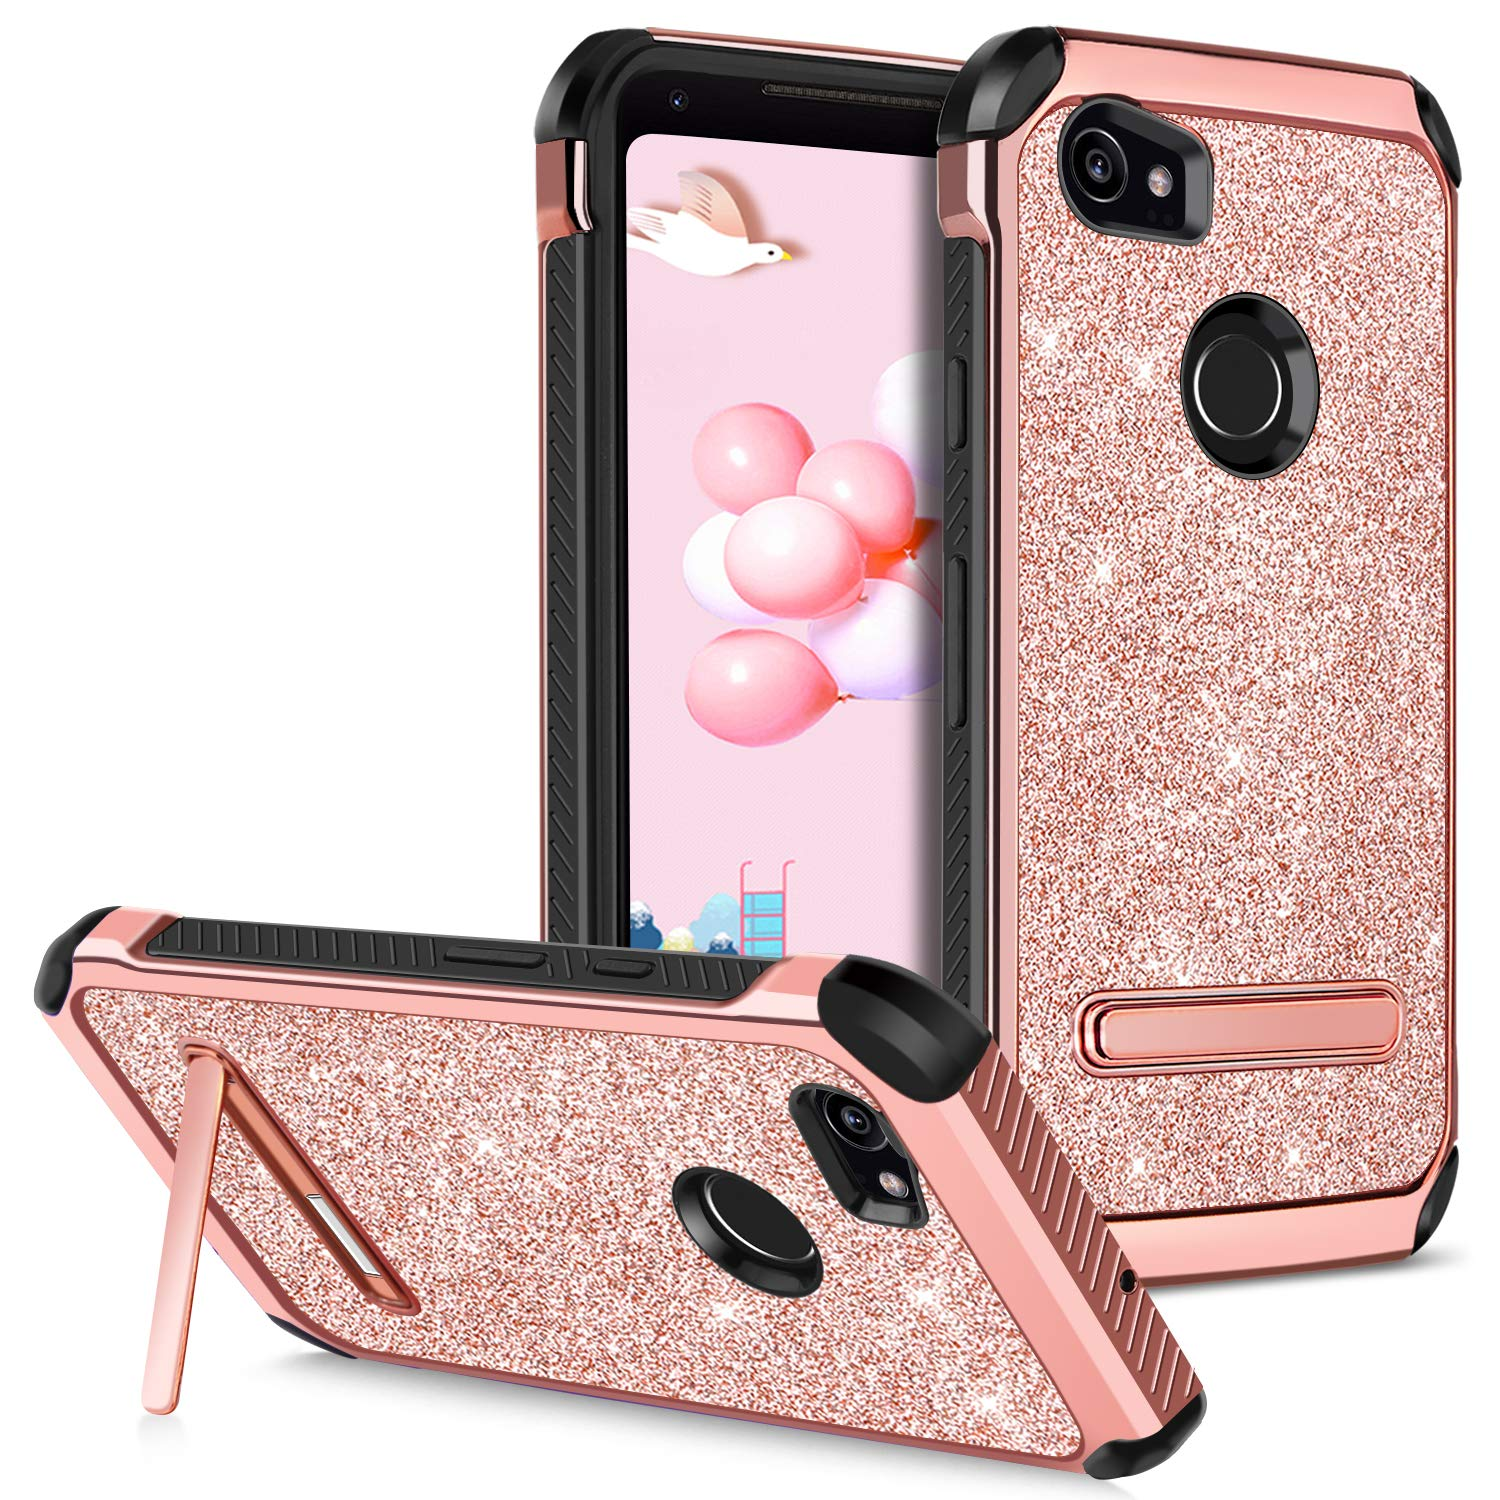 b4df08f321a Google Pixel 2 XL Case Kickstand GUAGUA Glitter Bling Dual Layer Hybrid  Hard PC with Shiny Faux Leather Anti-Slip Shockproof Protective Phone Case  for ...